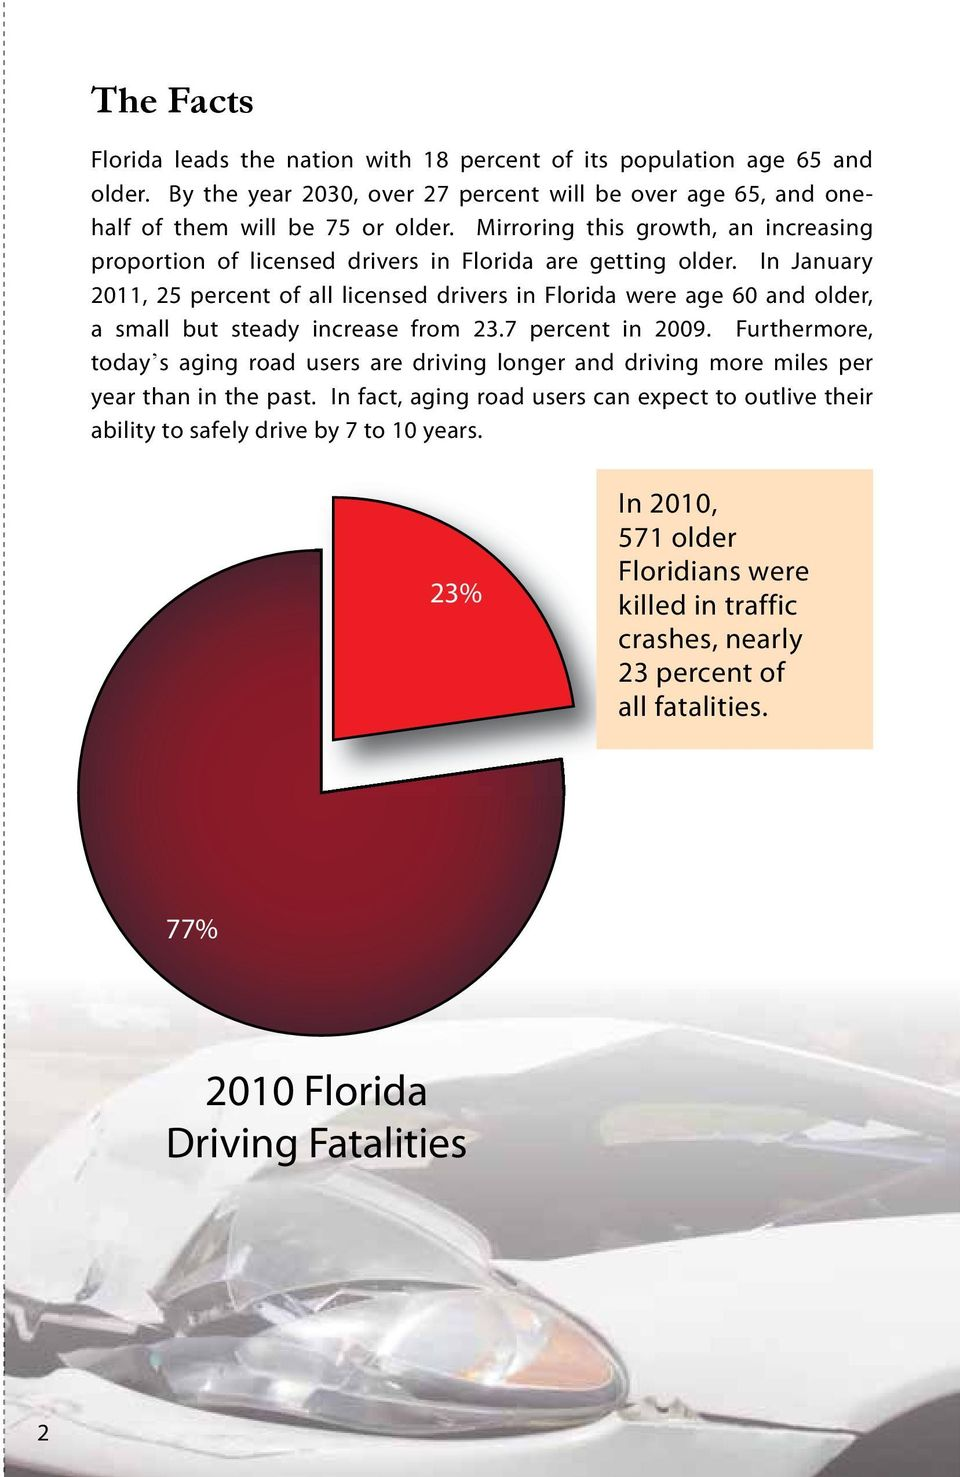 In January 2011, 25 percent of all licensed drivers in Florida were age 60 and older, a small but steady increase from 23.7 percent in 2009.